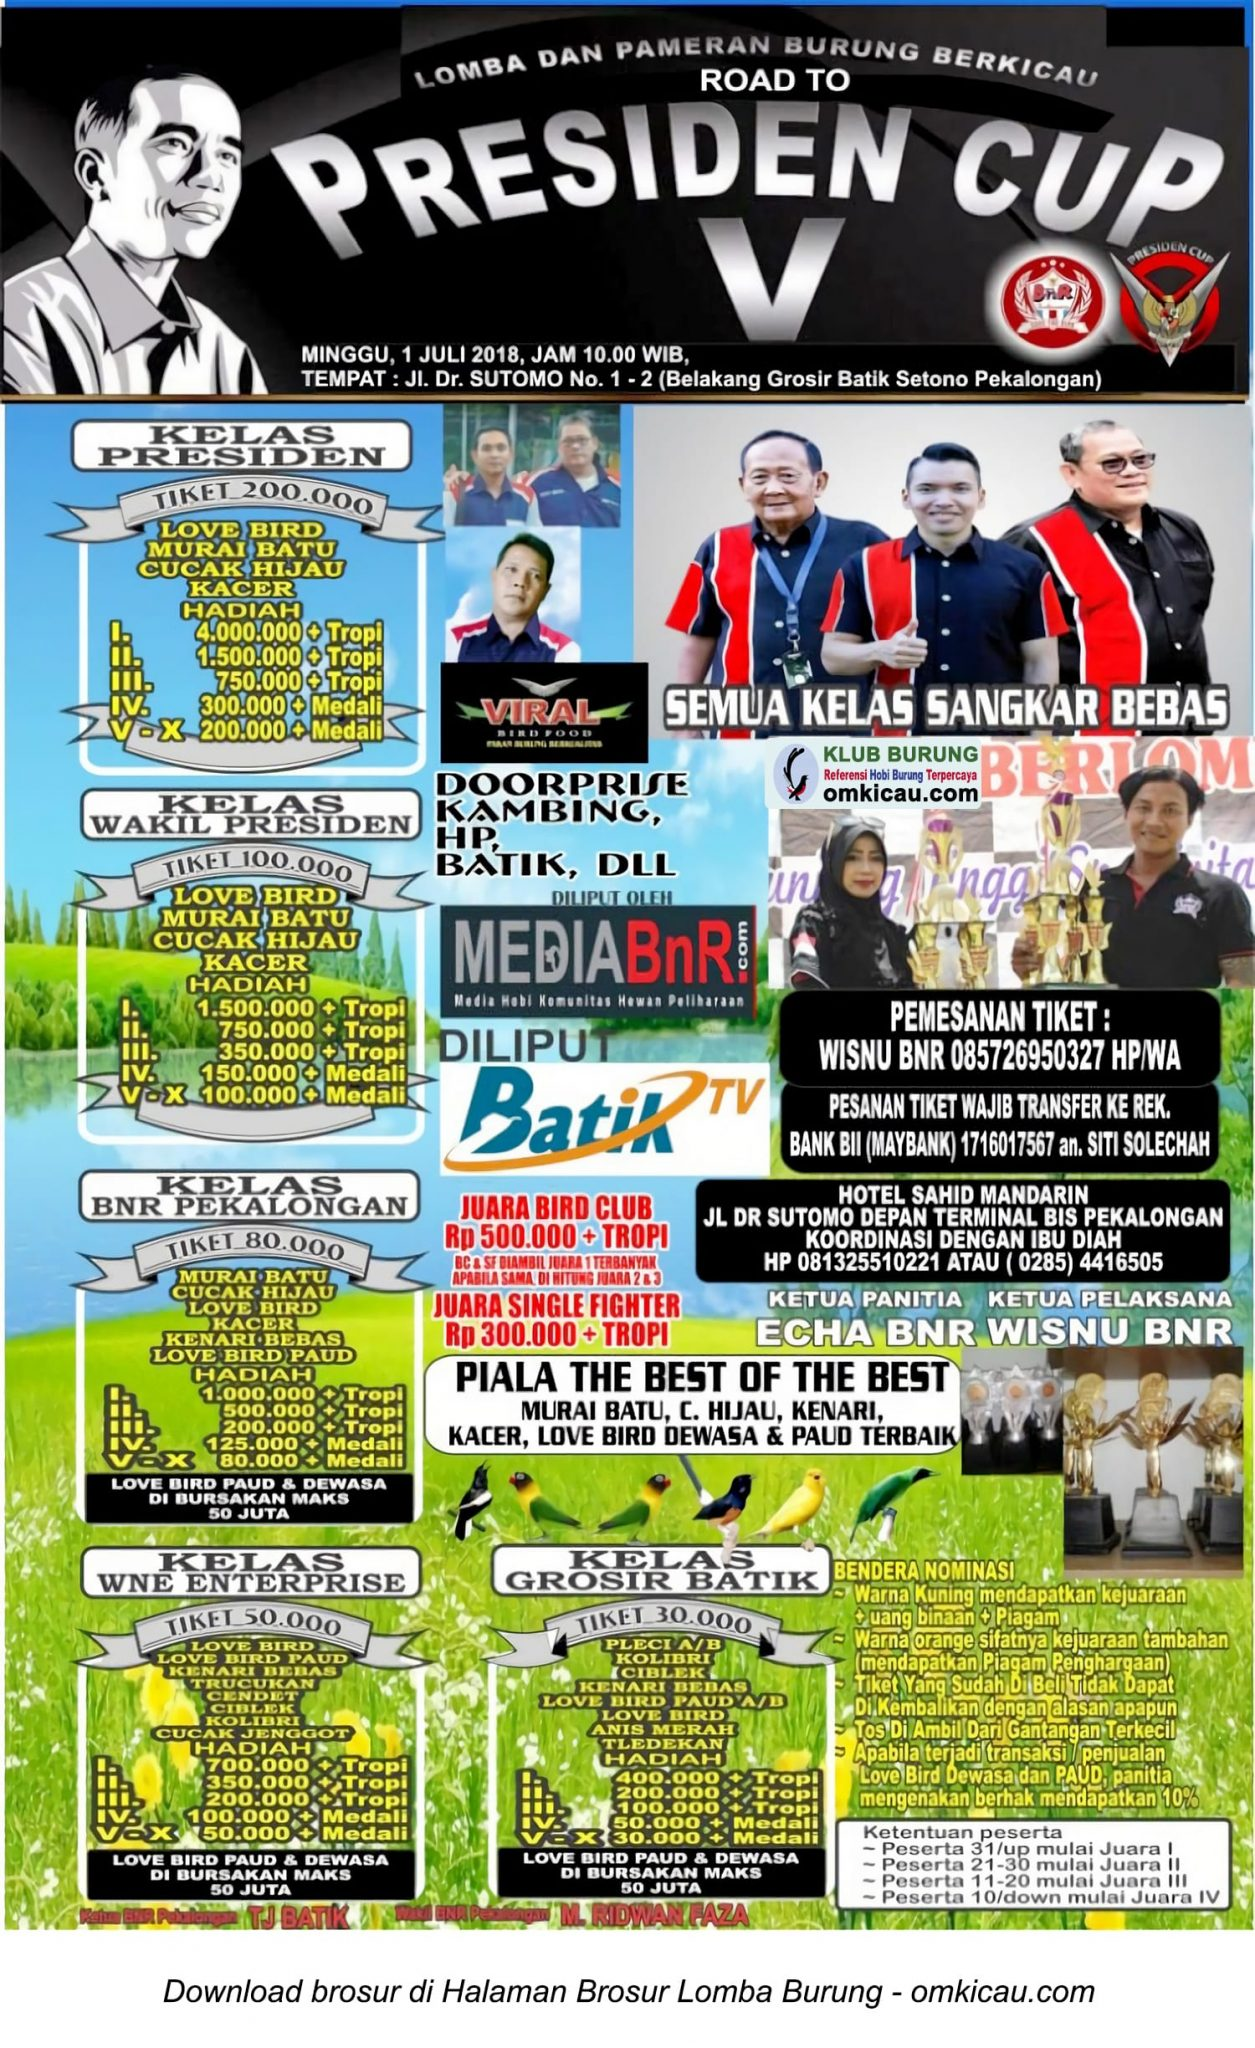 Road to Presiden Cup V